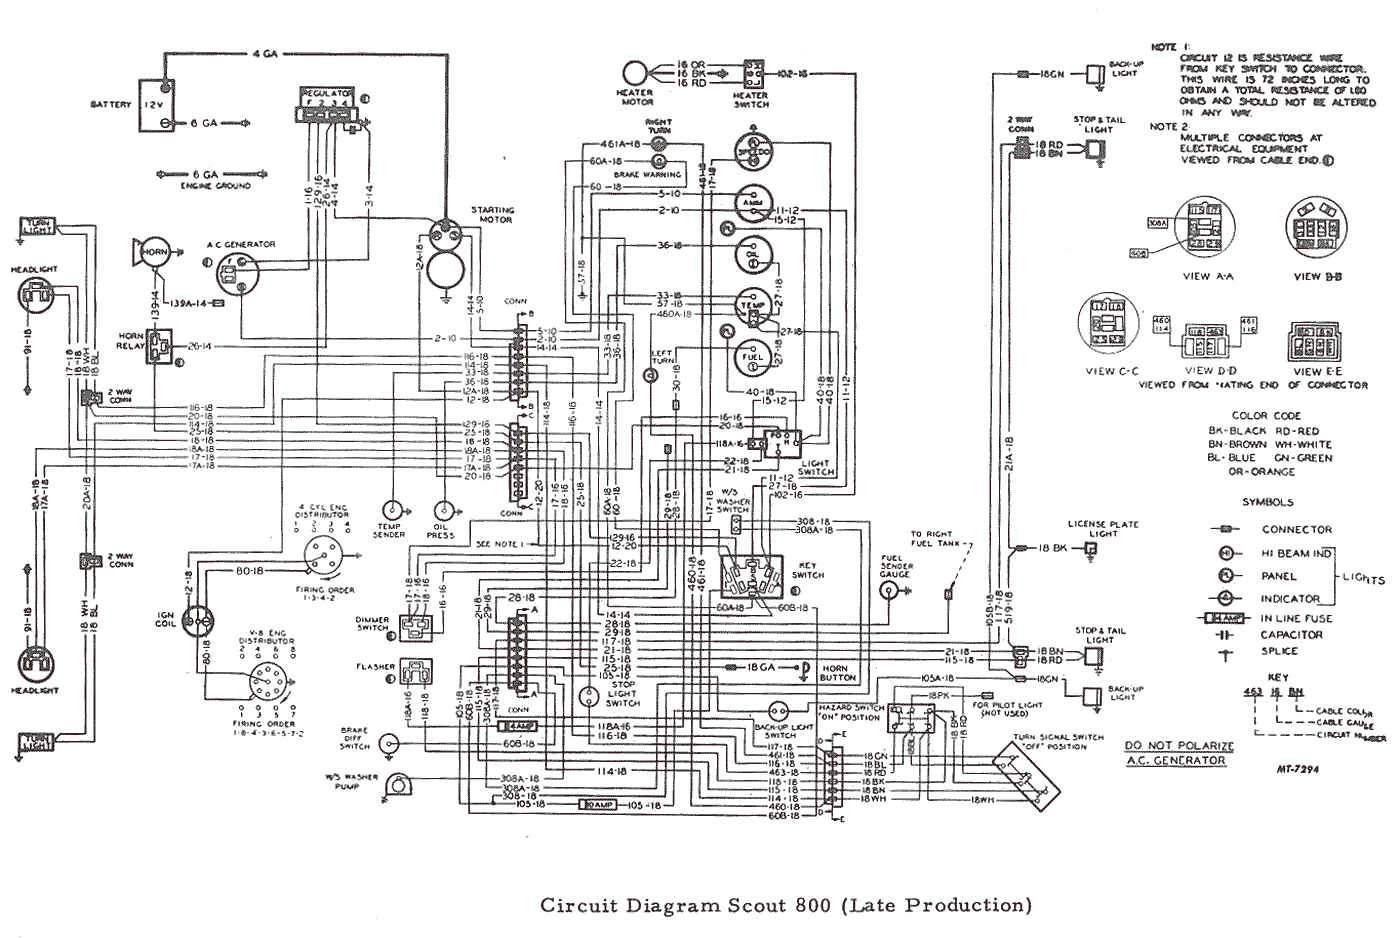 scout800 late production schematic gif